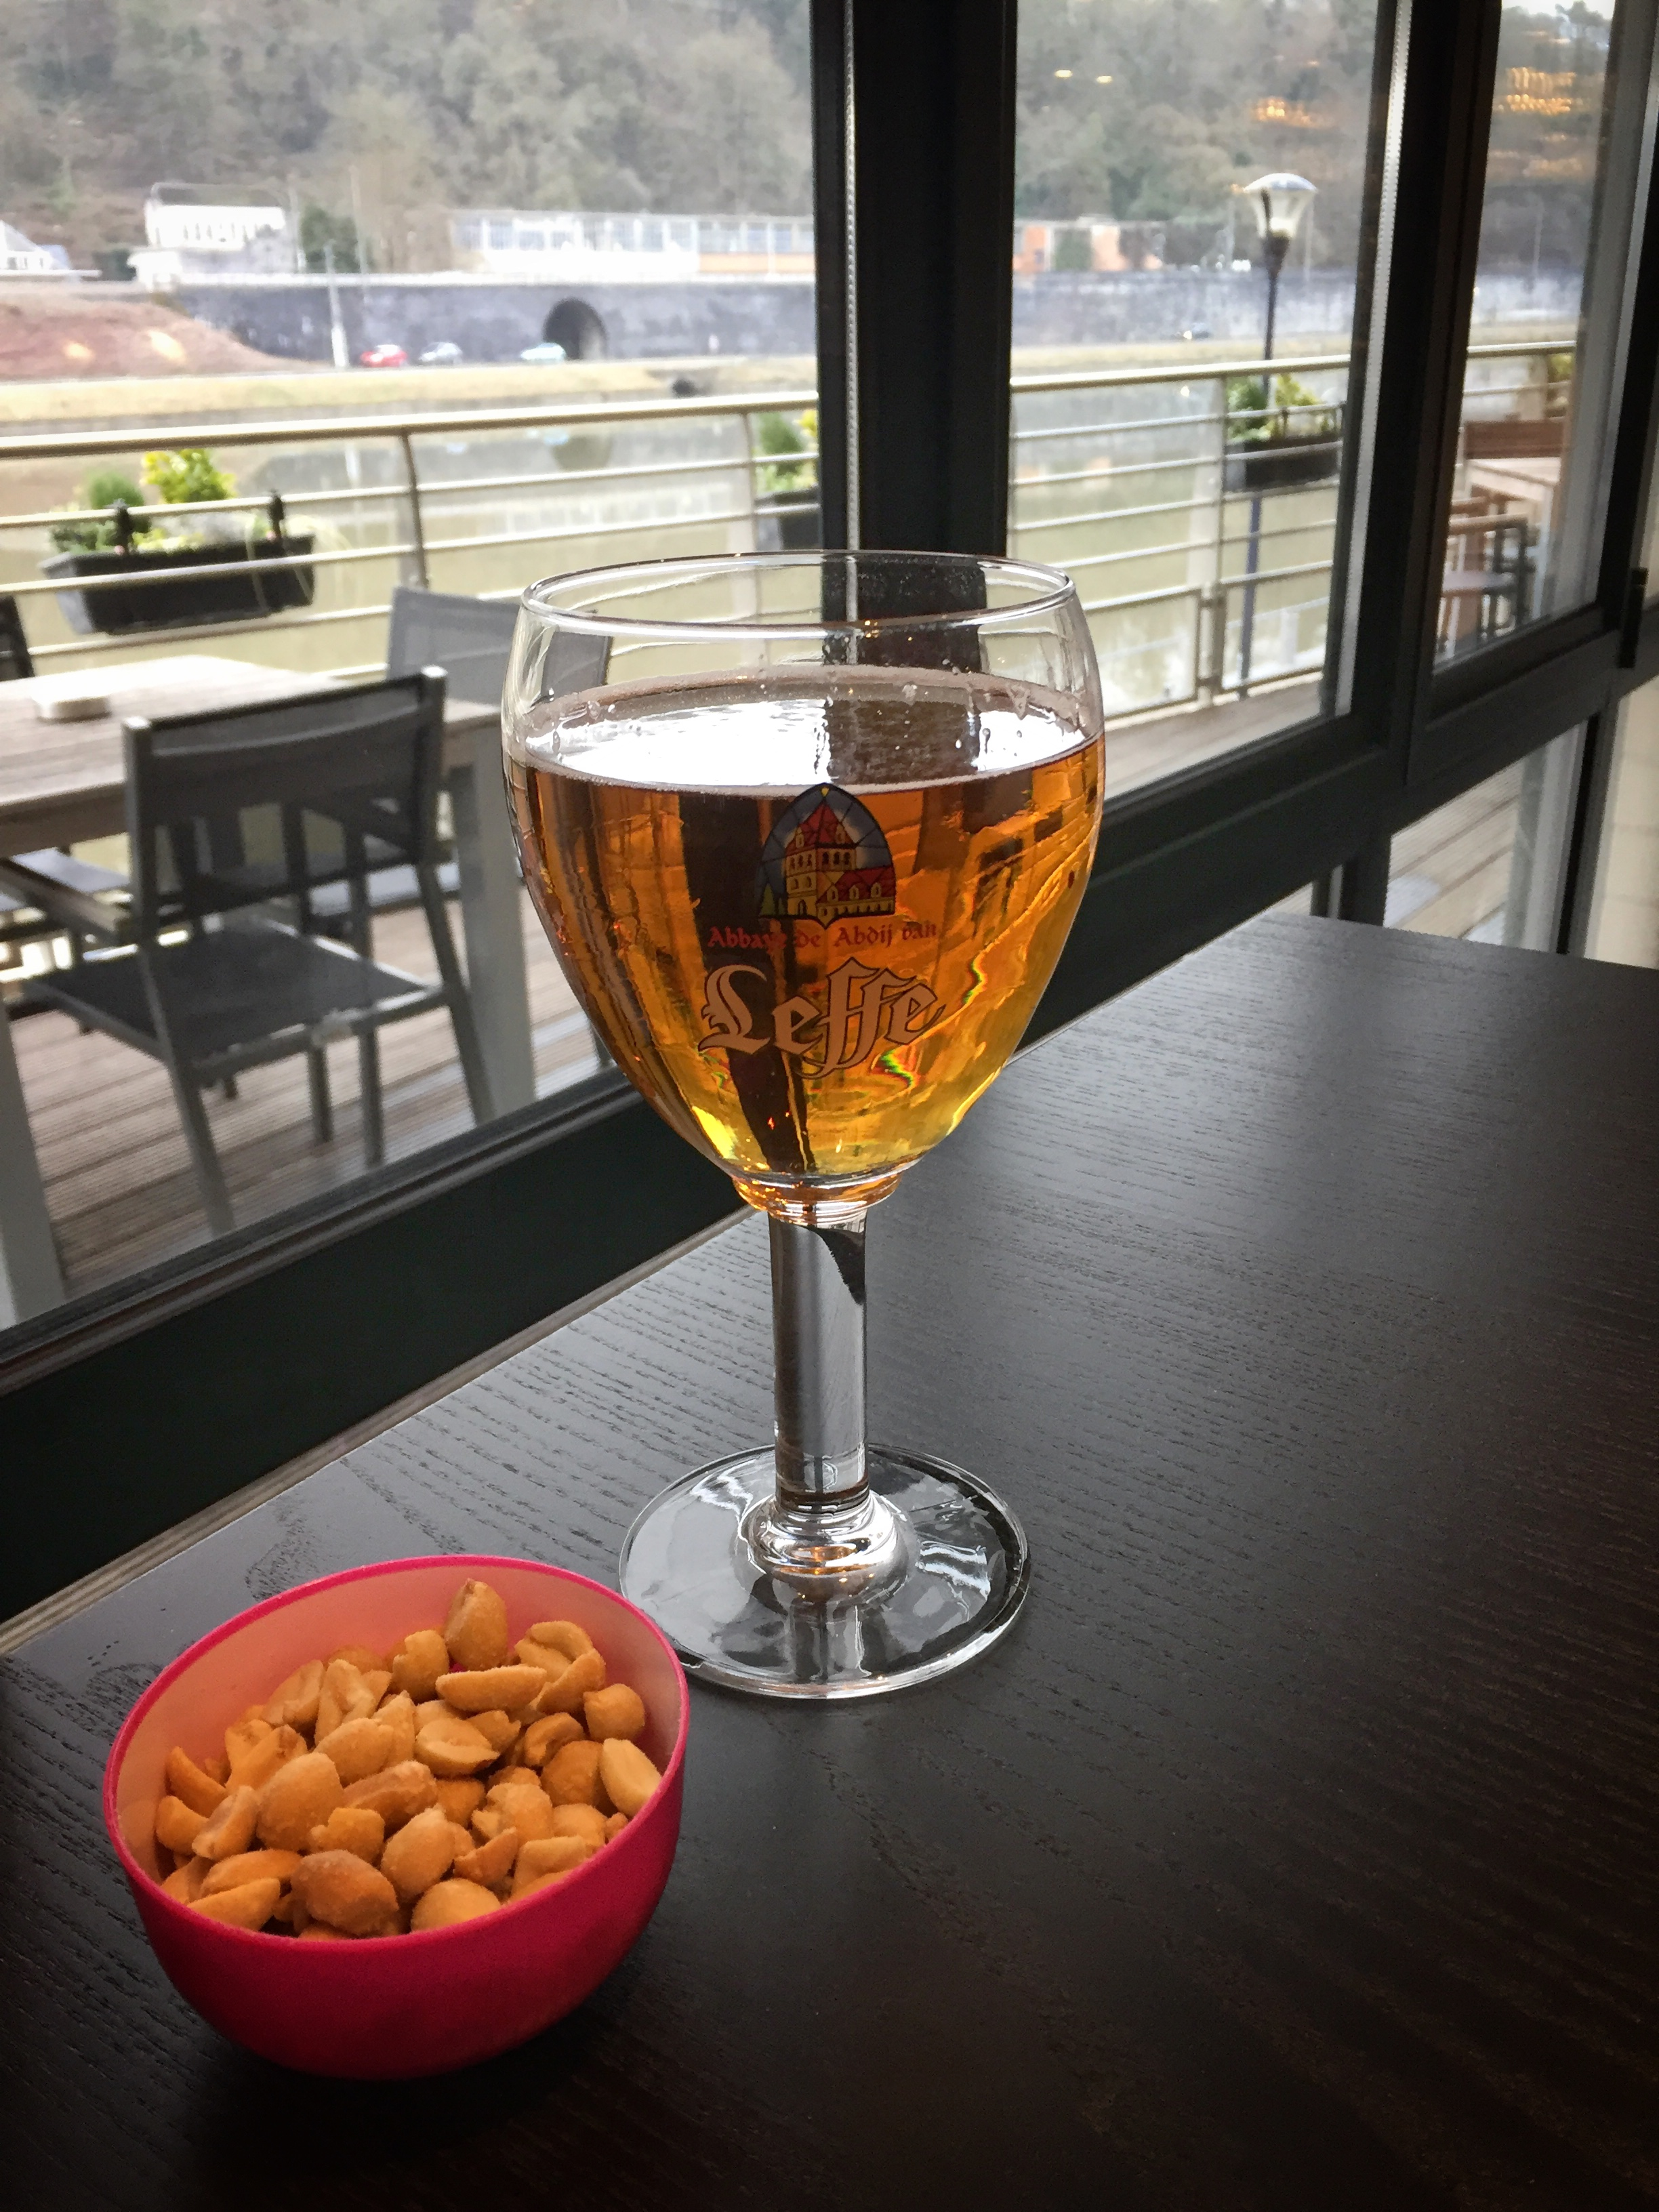 Leffe beer with a river view (Dinant, where Leffe began)